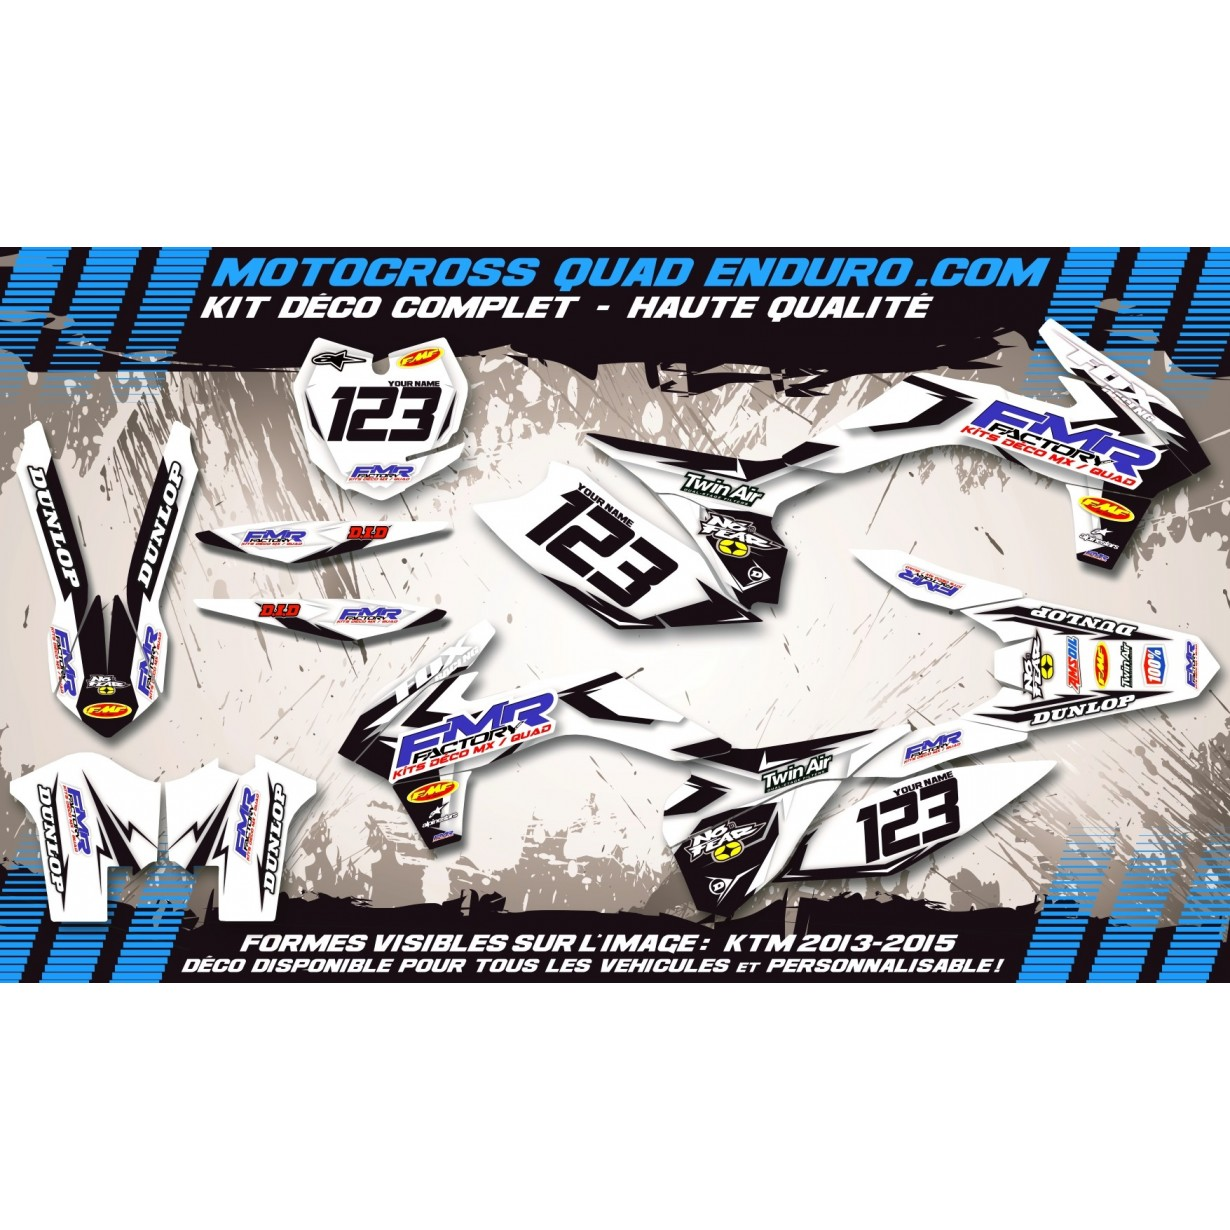 KIT DÉCO Perso 450 CRF 09-12 Fmr factory WT Edition MA13WT